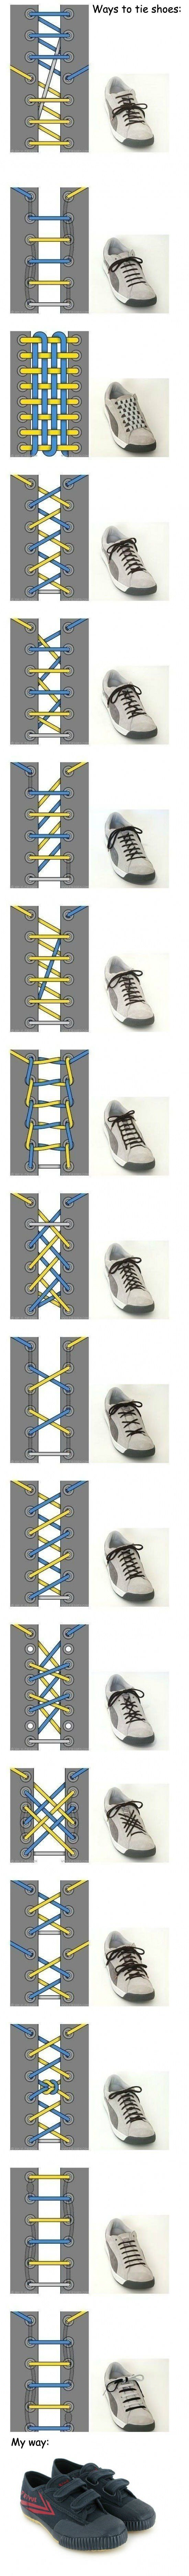 5,050 points • 270 comments - Several ways to tie shoes. - IWSMT has amazing images, videos and anectodes to waste your time on